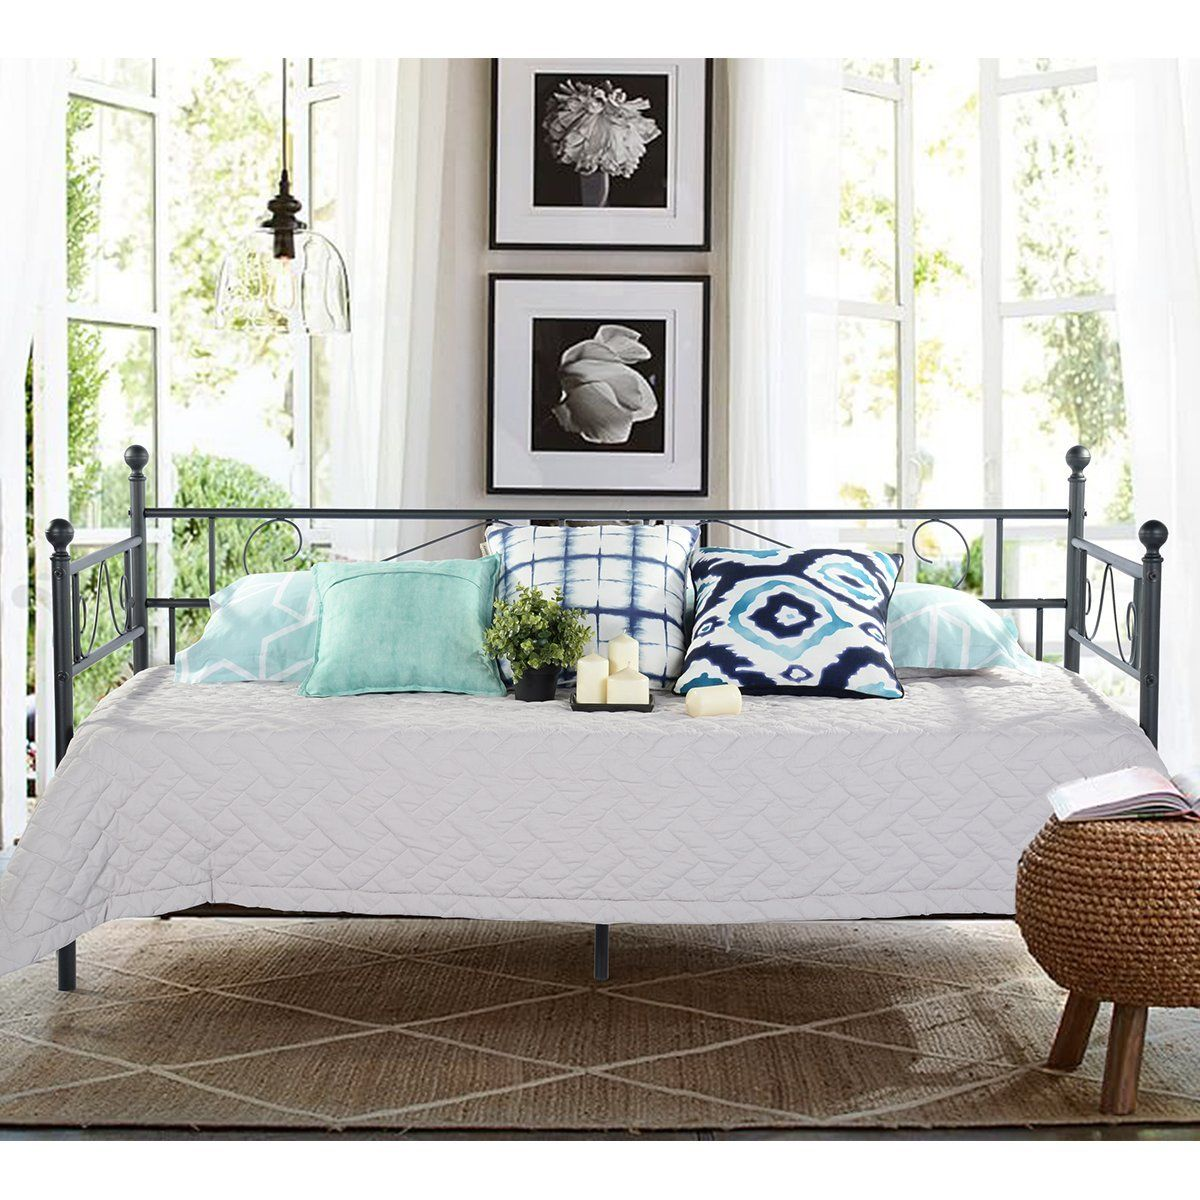 Daybeds that work for every lifestyle | Ease Bedding With Style ...